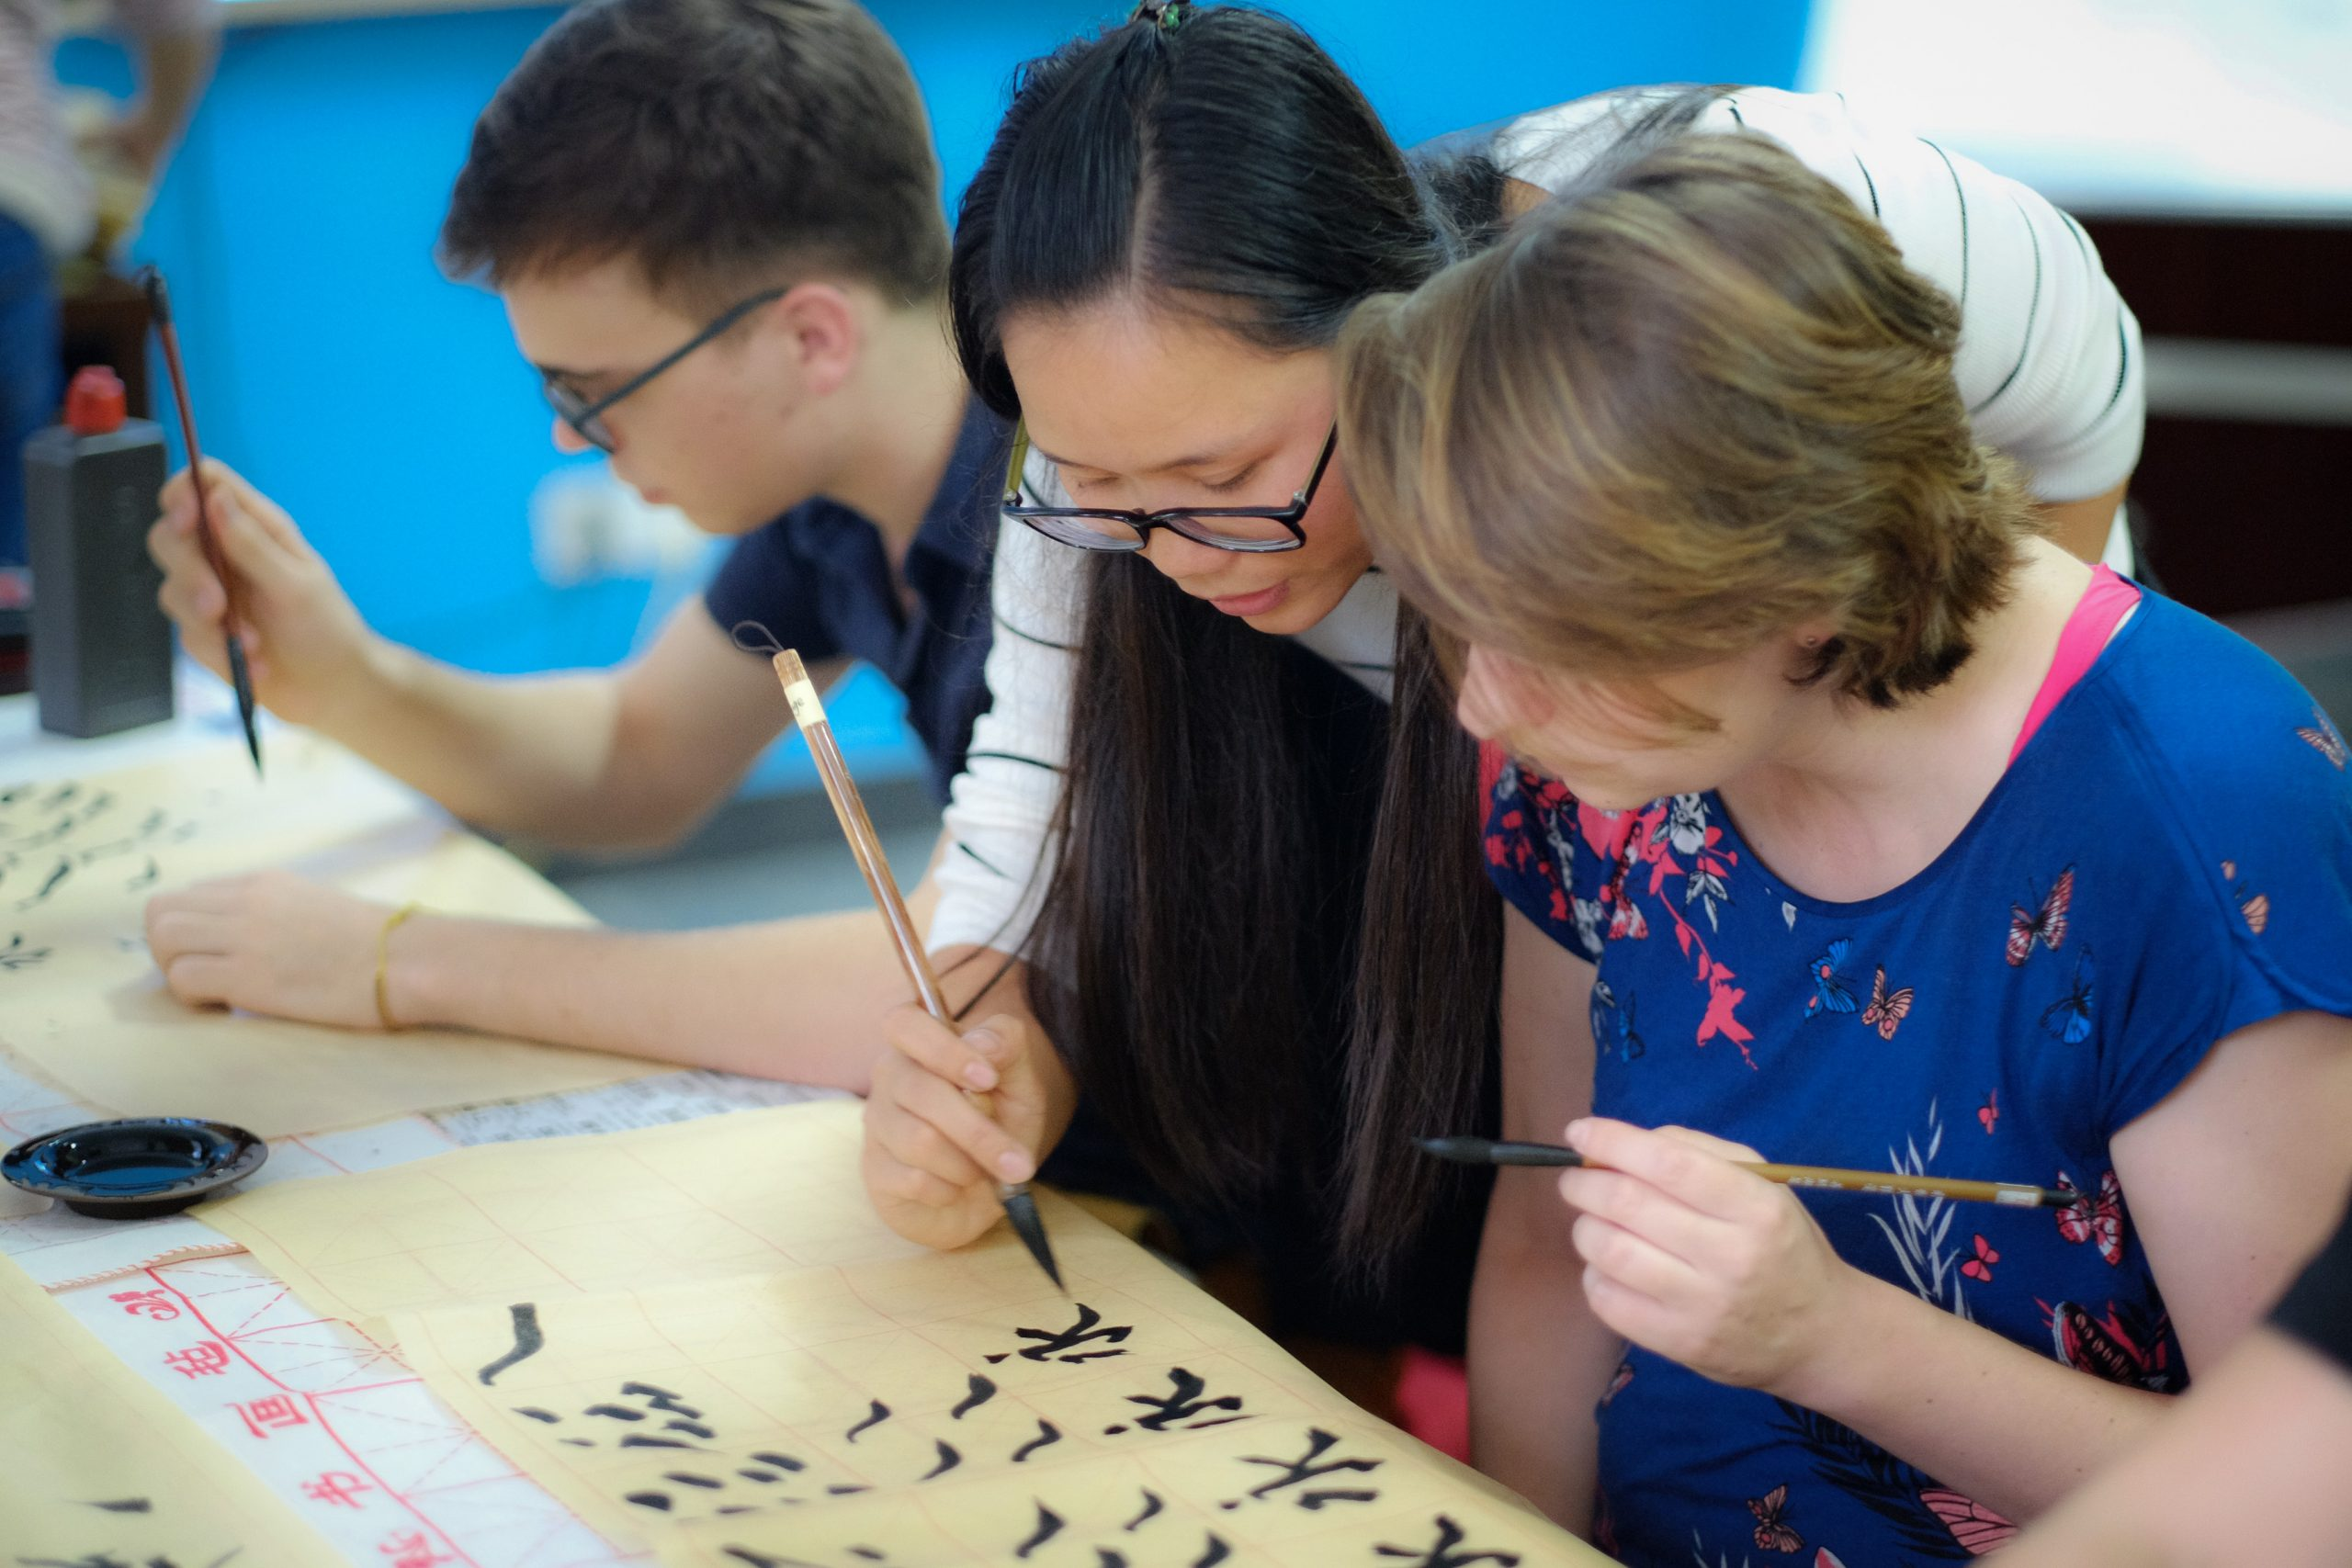 Calligraphy - Most Effective Way to Learn Chinese